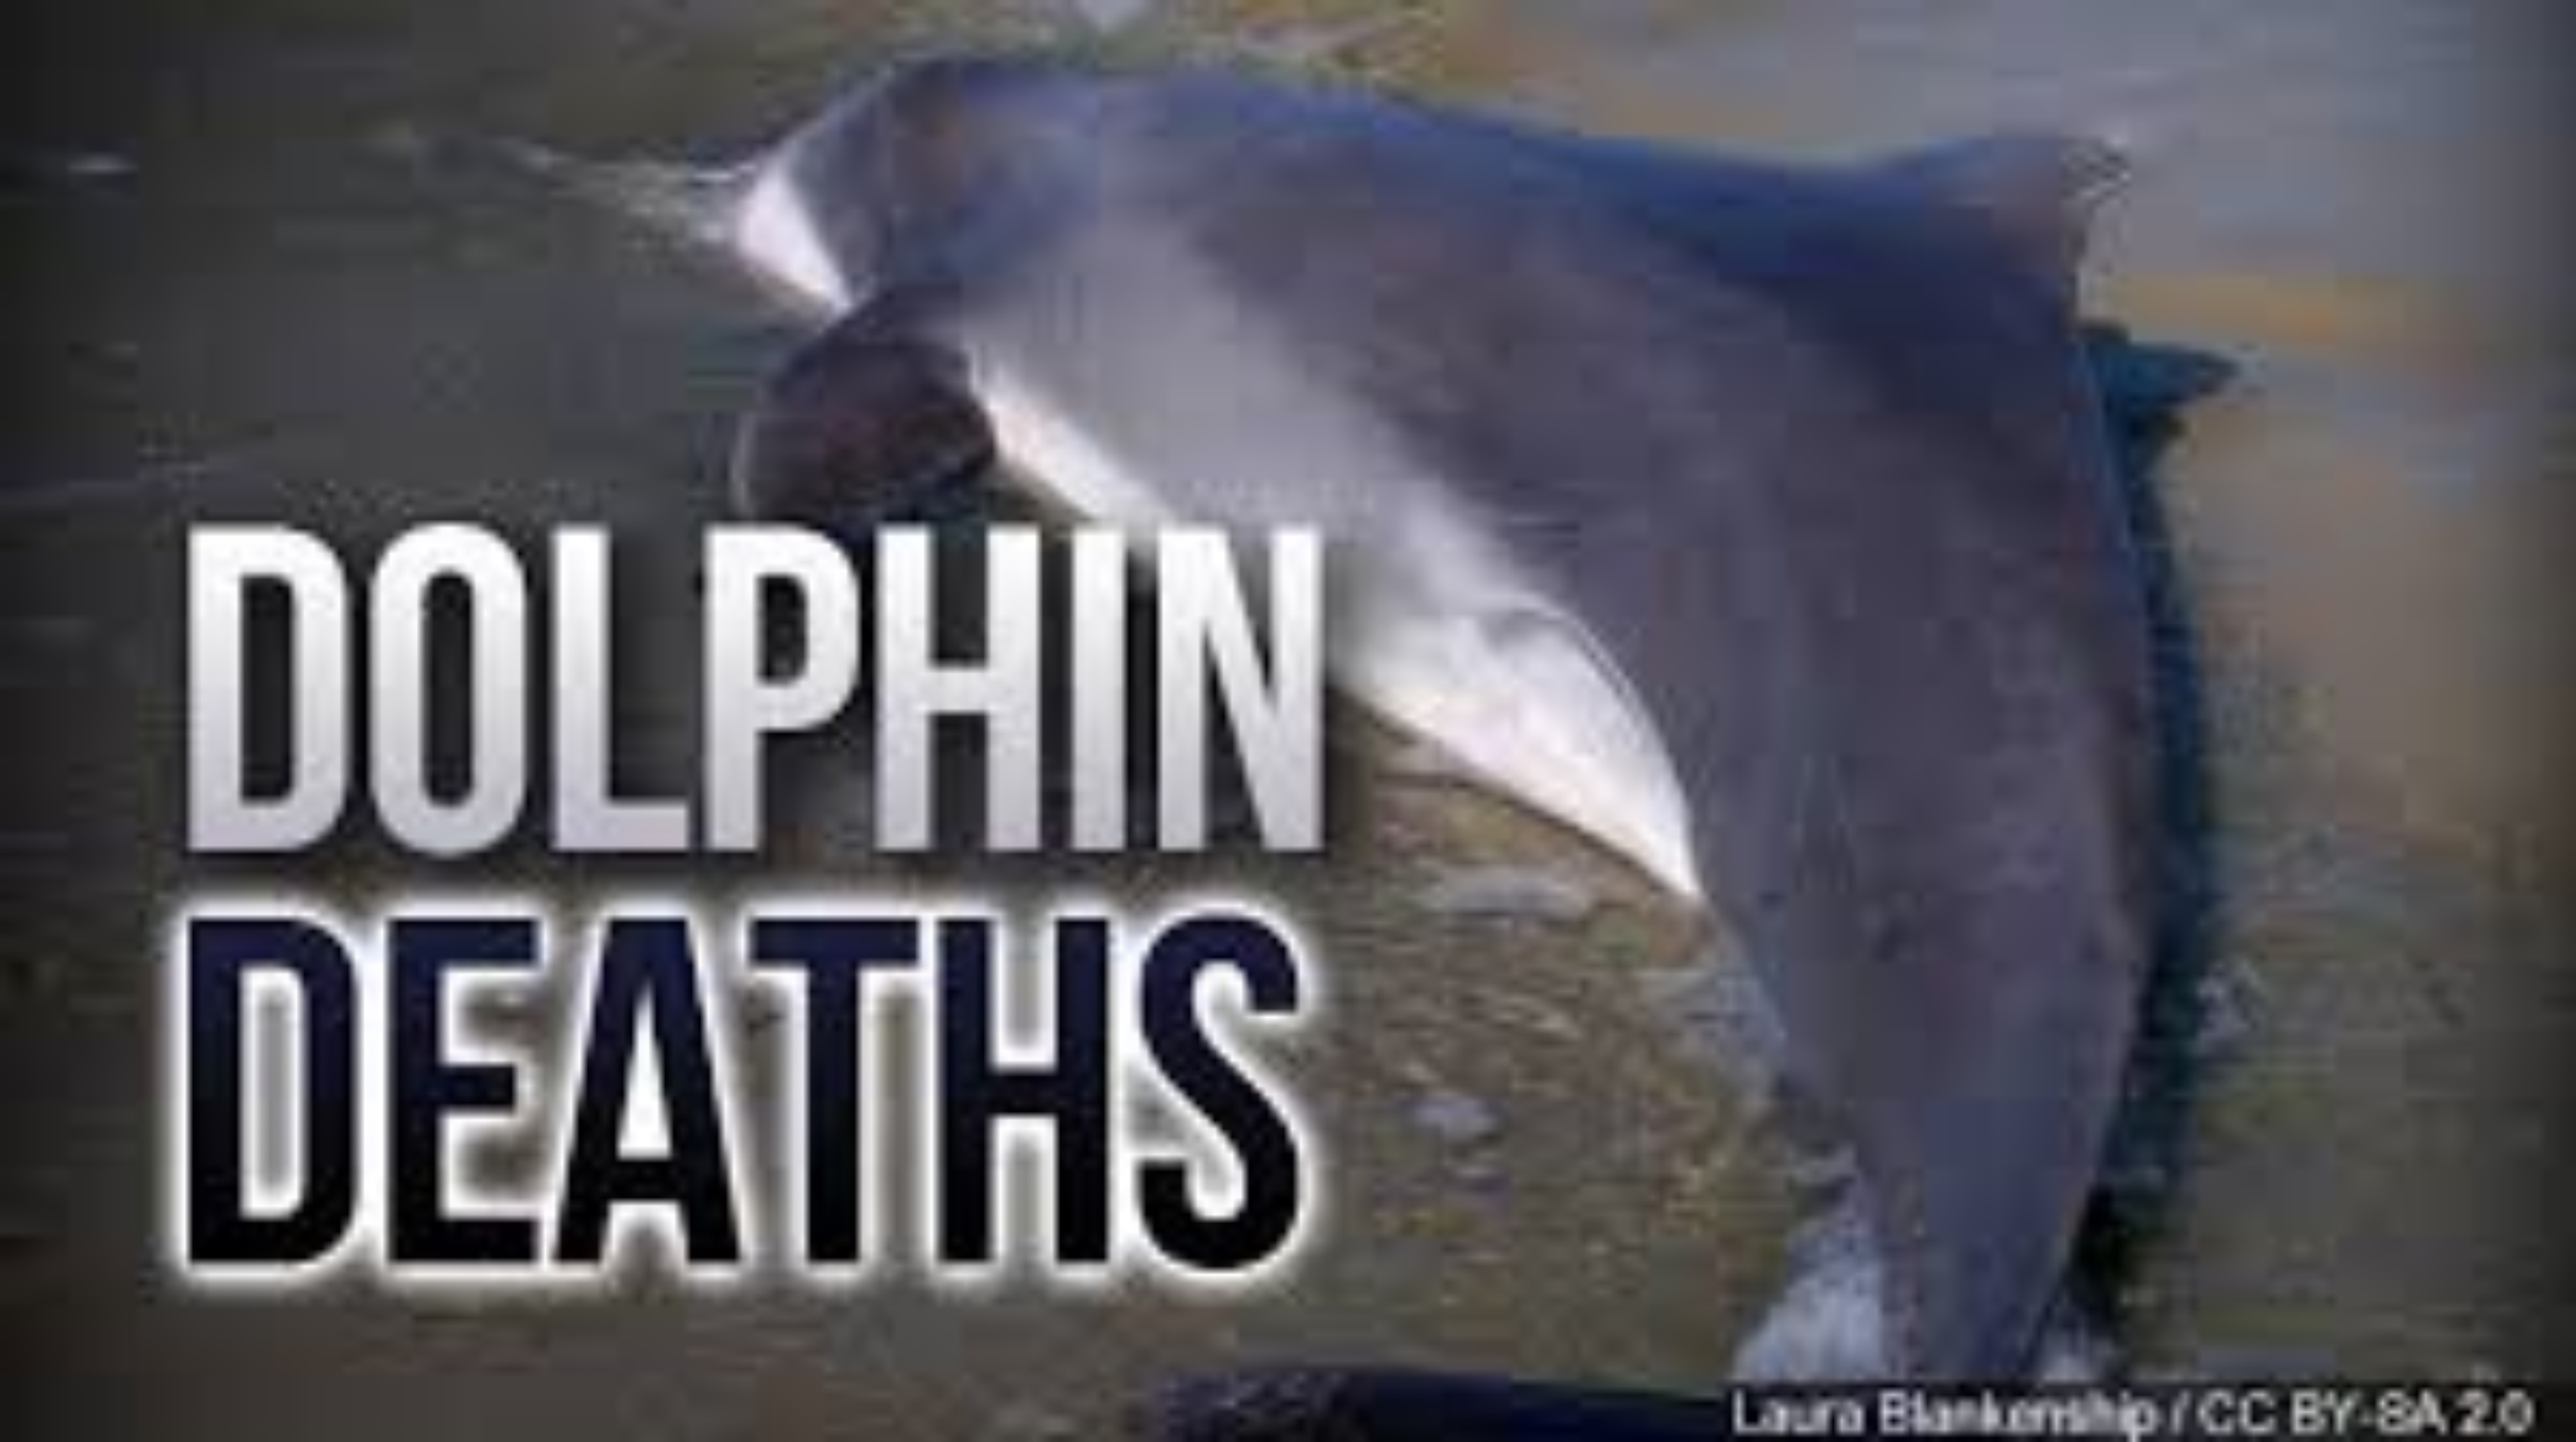 /Files/799ecefe-1c23-43e5-90ca-339f640f9d91/DolphinDeaths.jpg